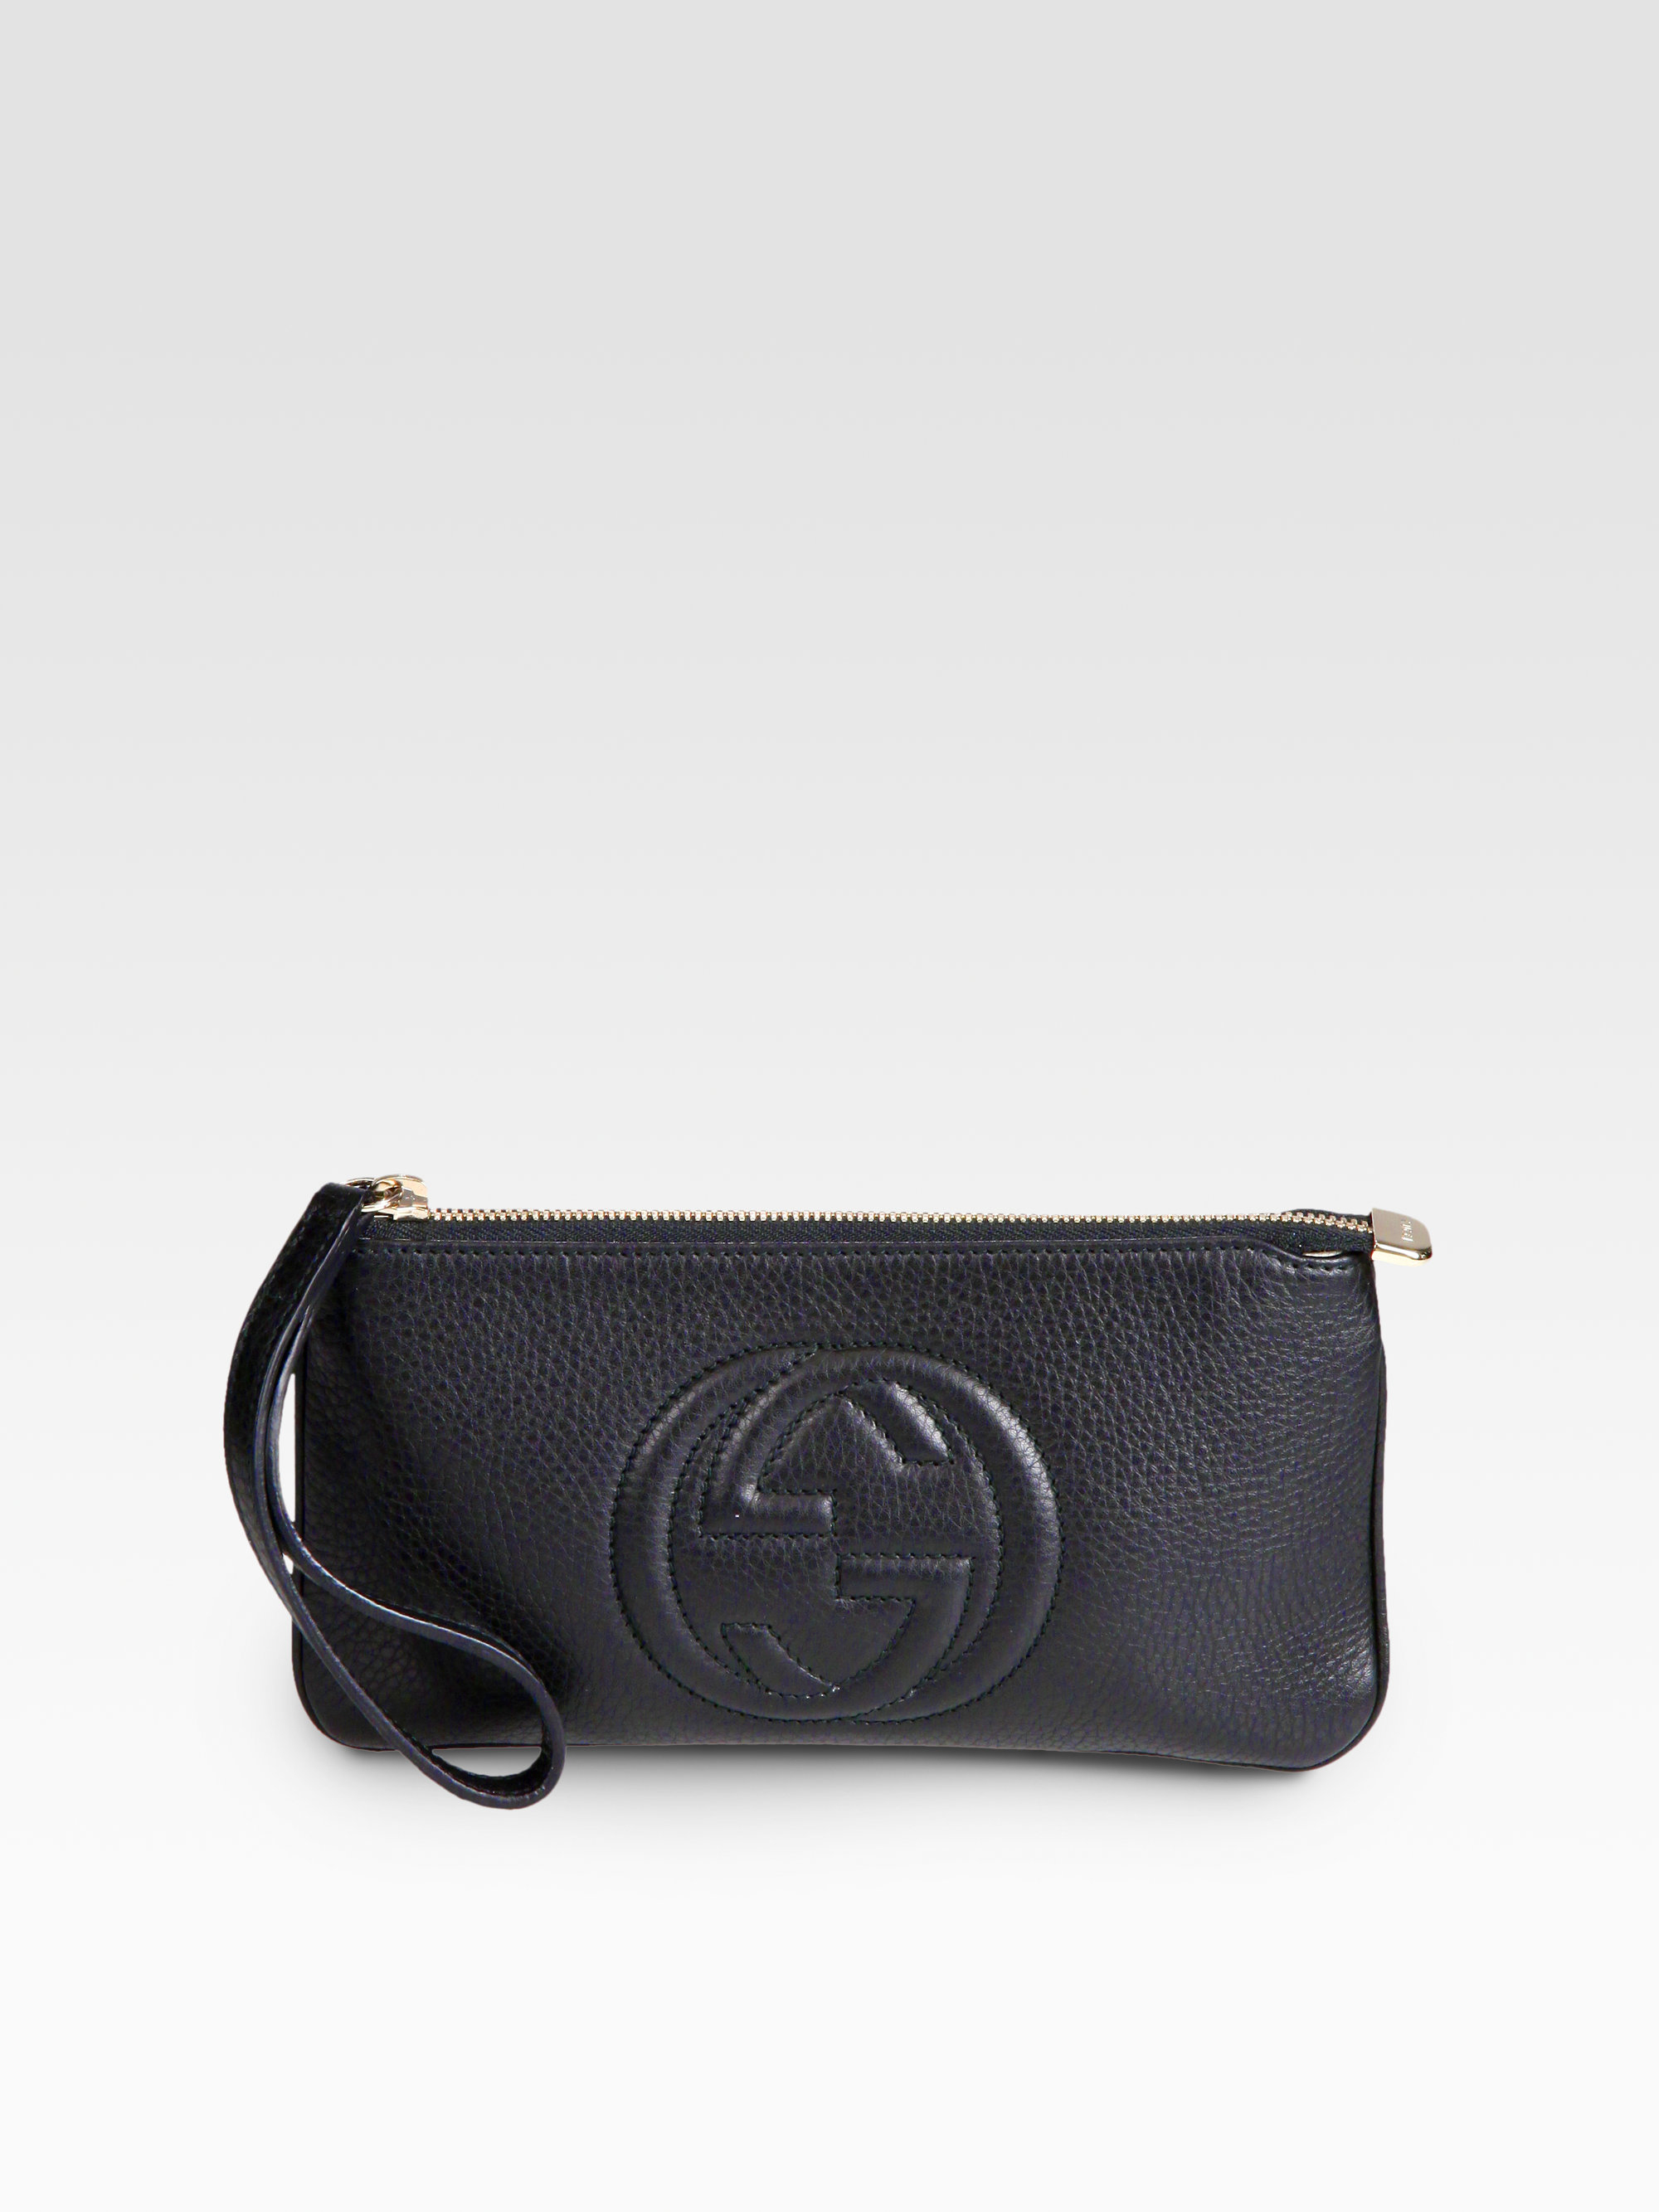 a1627b48b041 Gallery. Previously sold at: Saks Fifth Avenue · Women's Wristlets Women's Gucci  Soho Bag